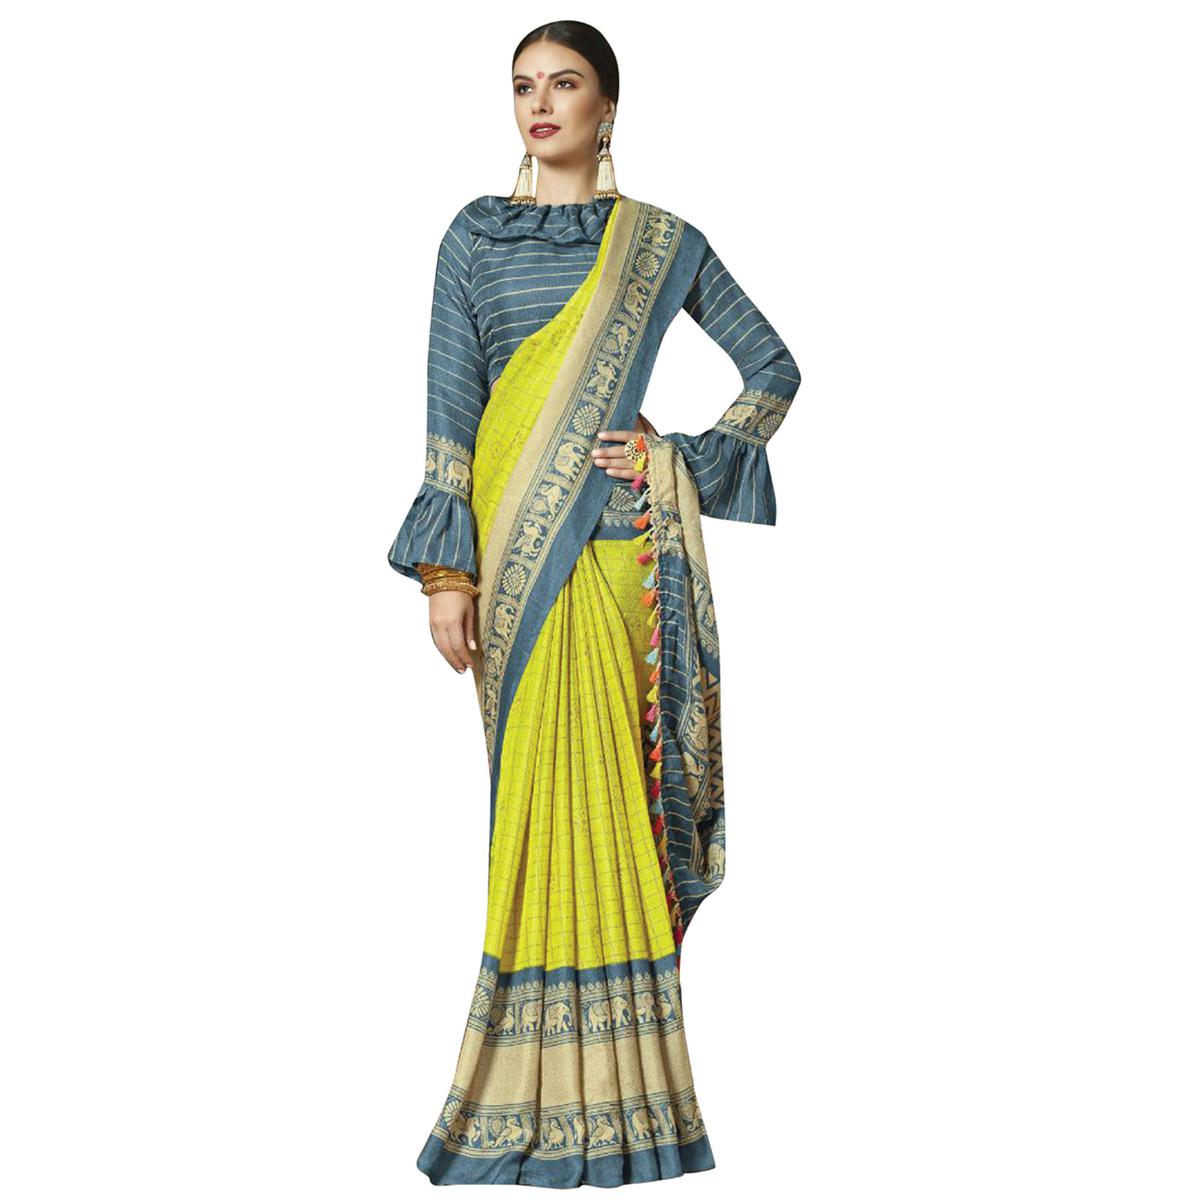 Mesmerising Lemon Green-Gray Colored Festive Wear Printed Linen Saree